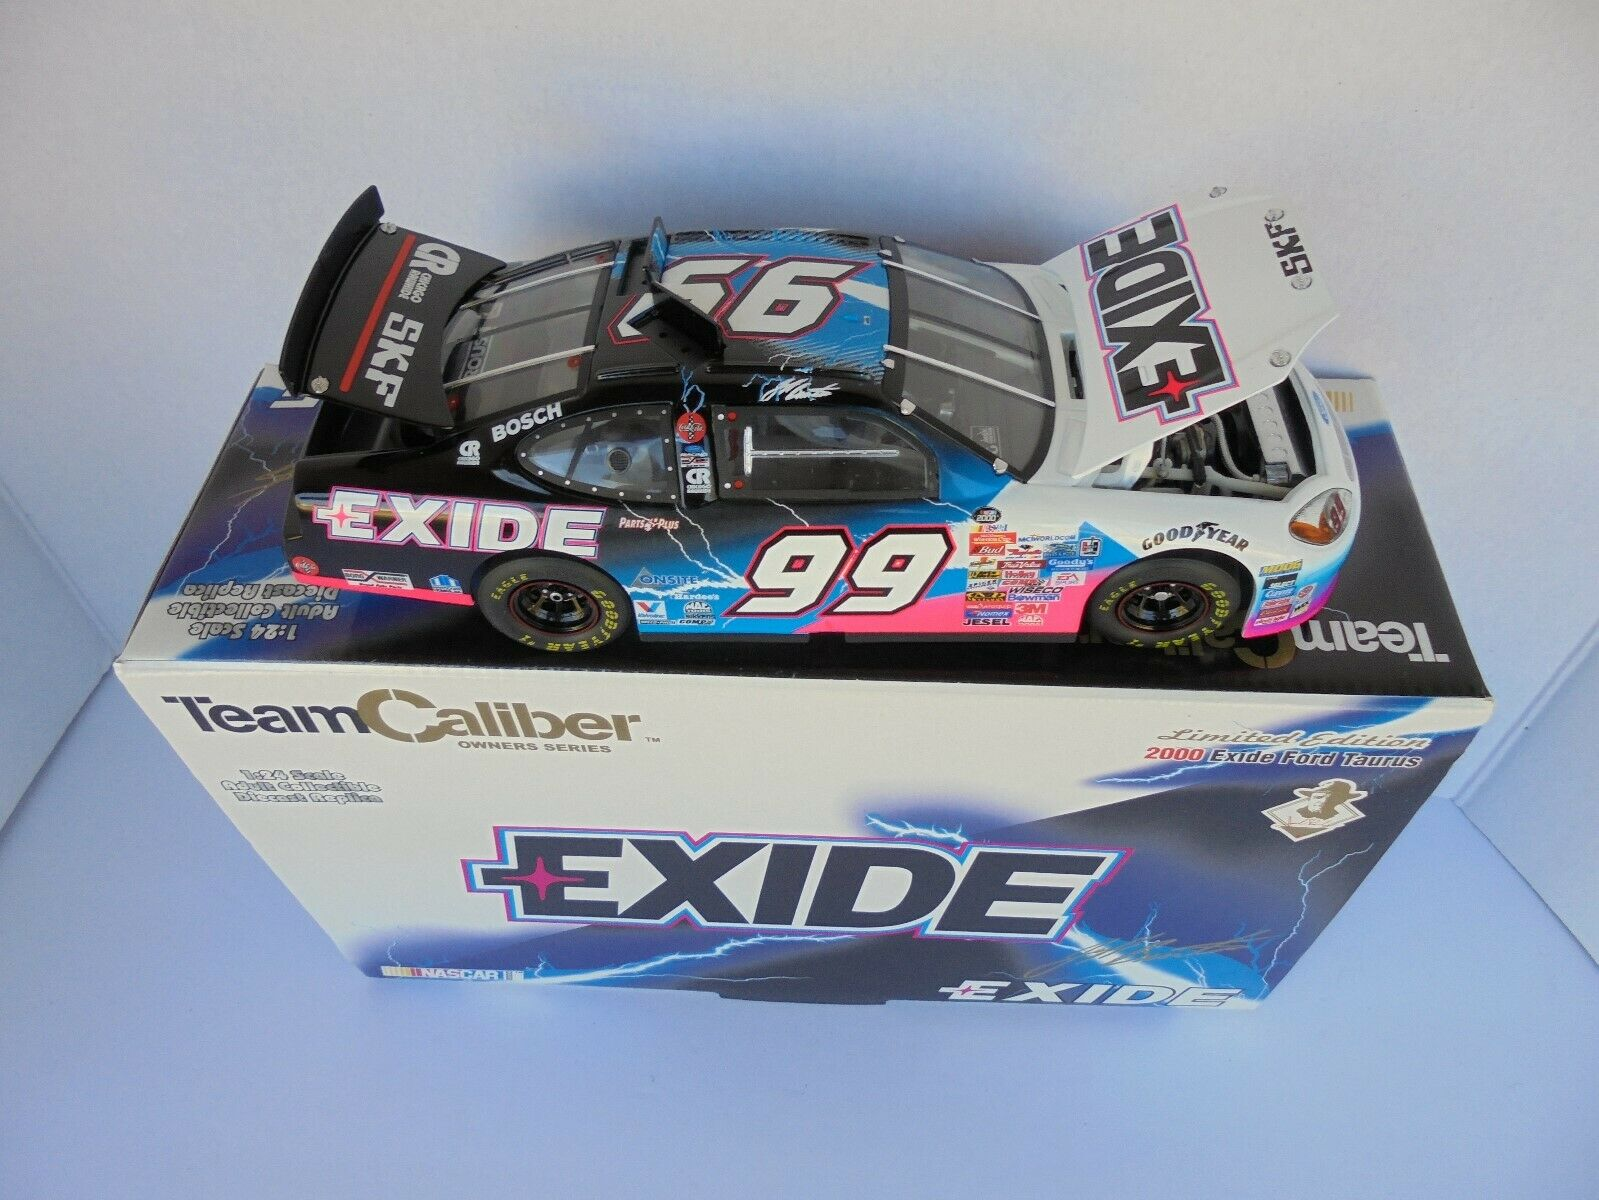 Jeff Burton Exide 2000 Ford Taurus Roush Racing TCOS 1 24th Nascar Diecast